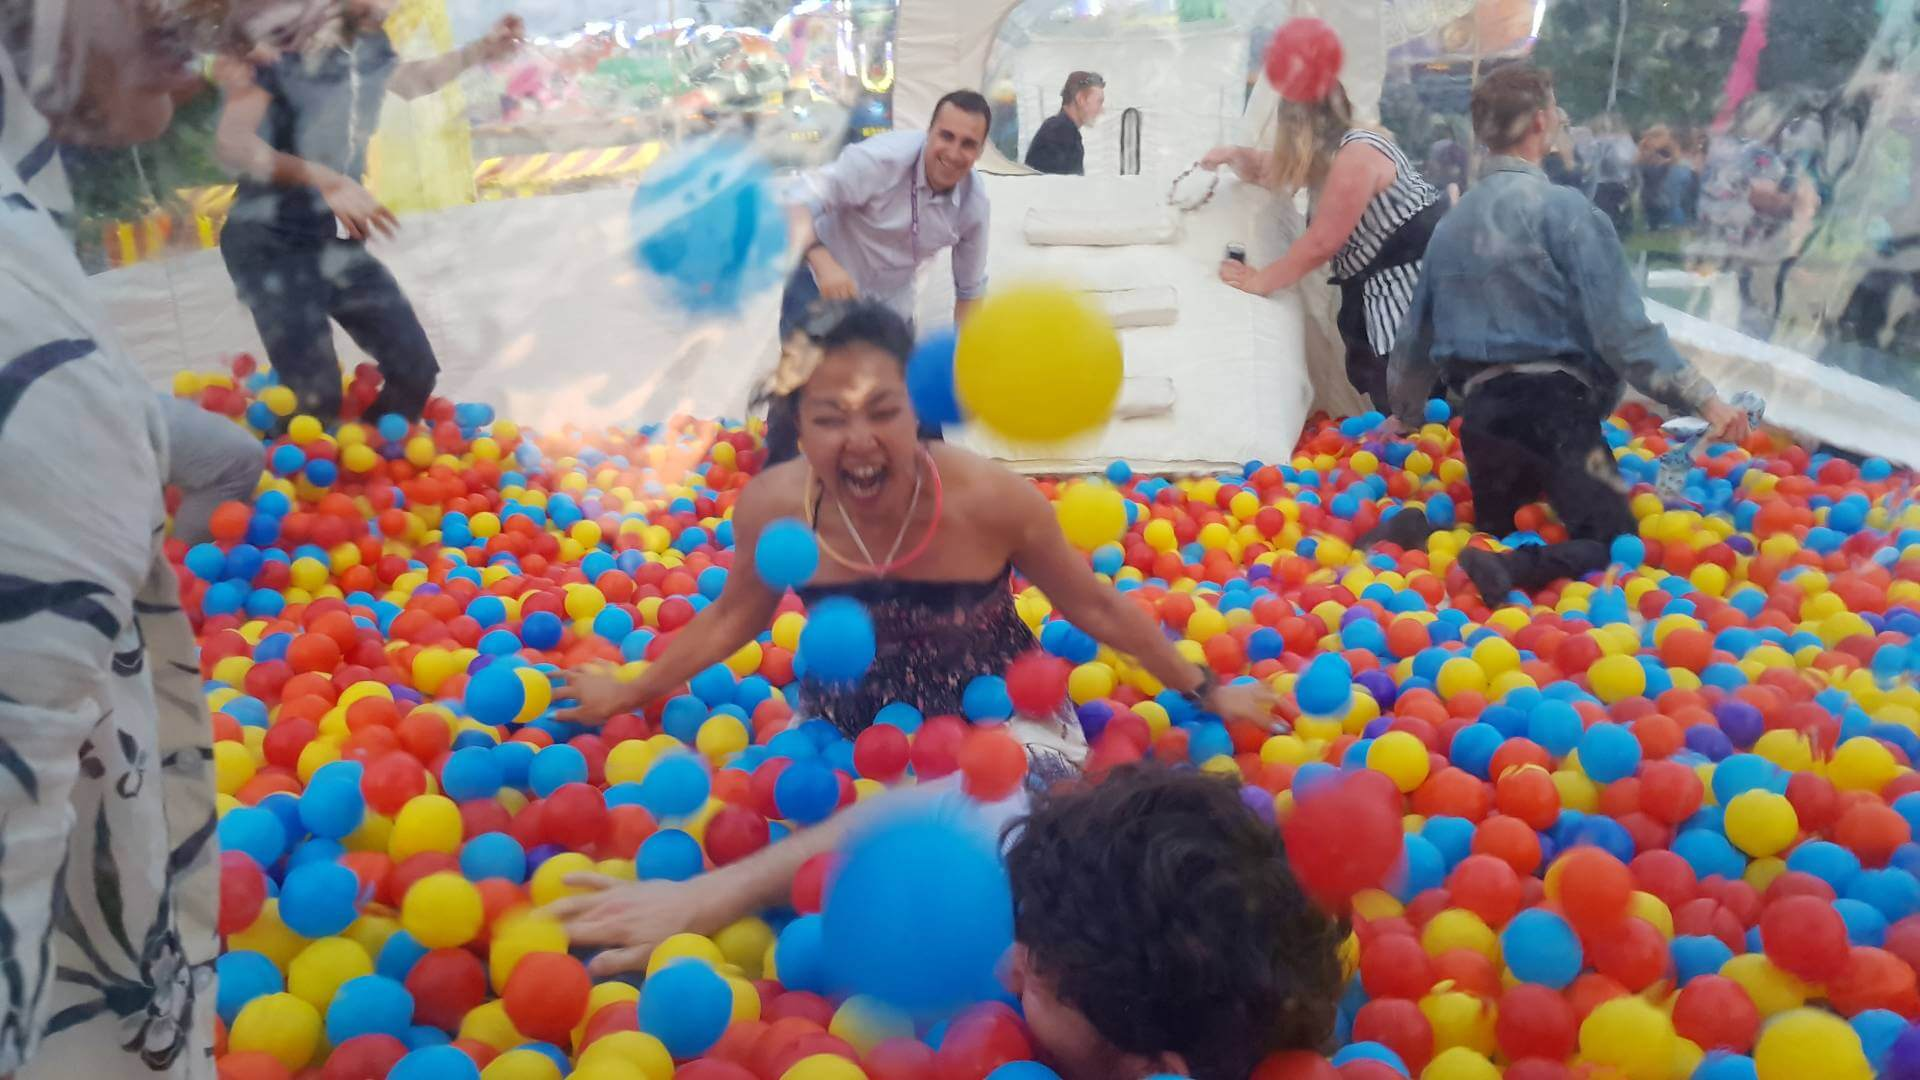 people playing in ball pit